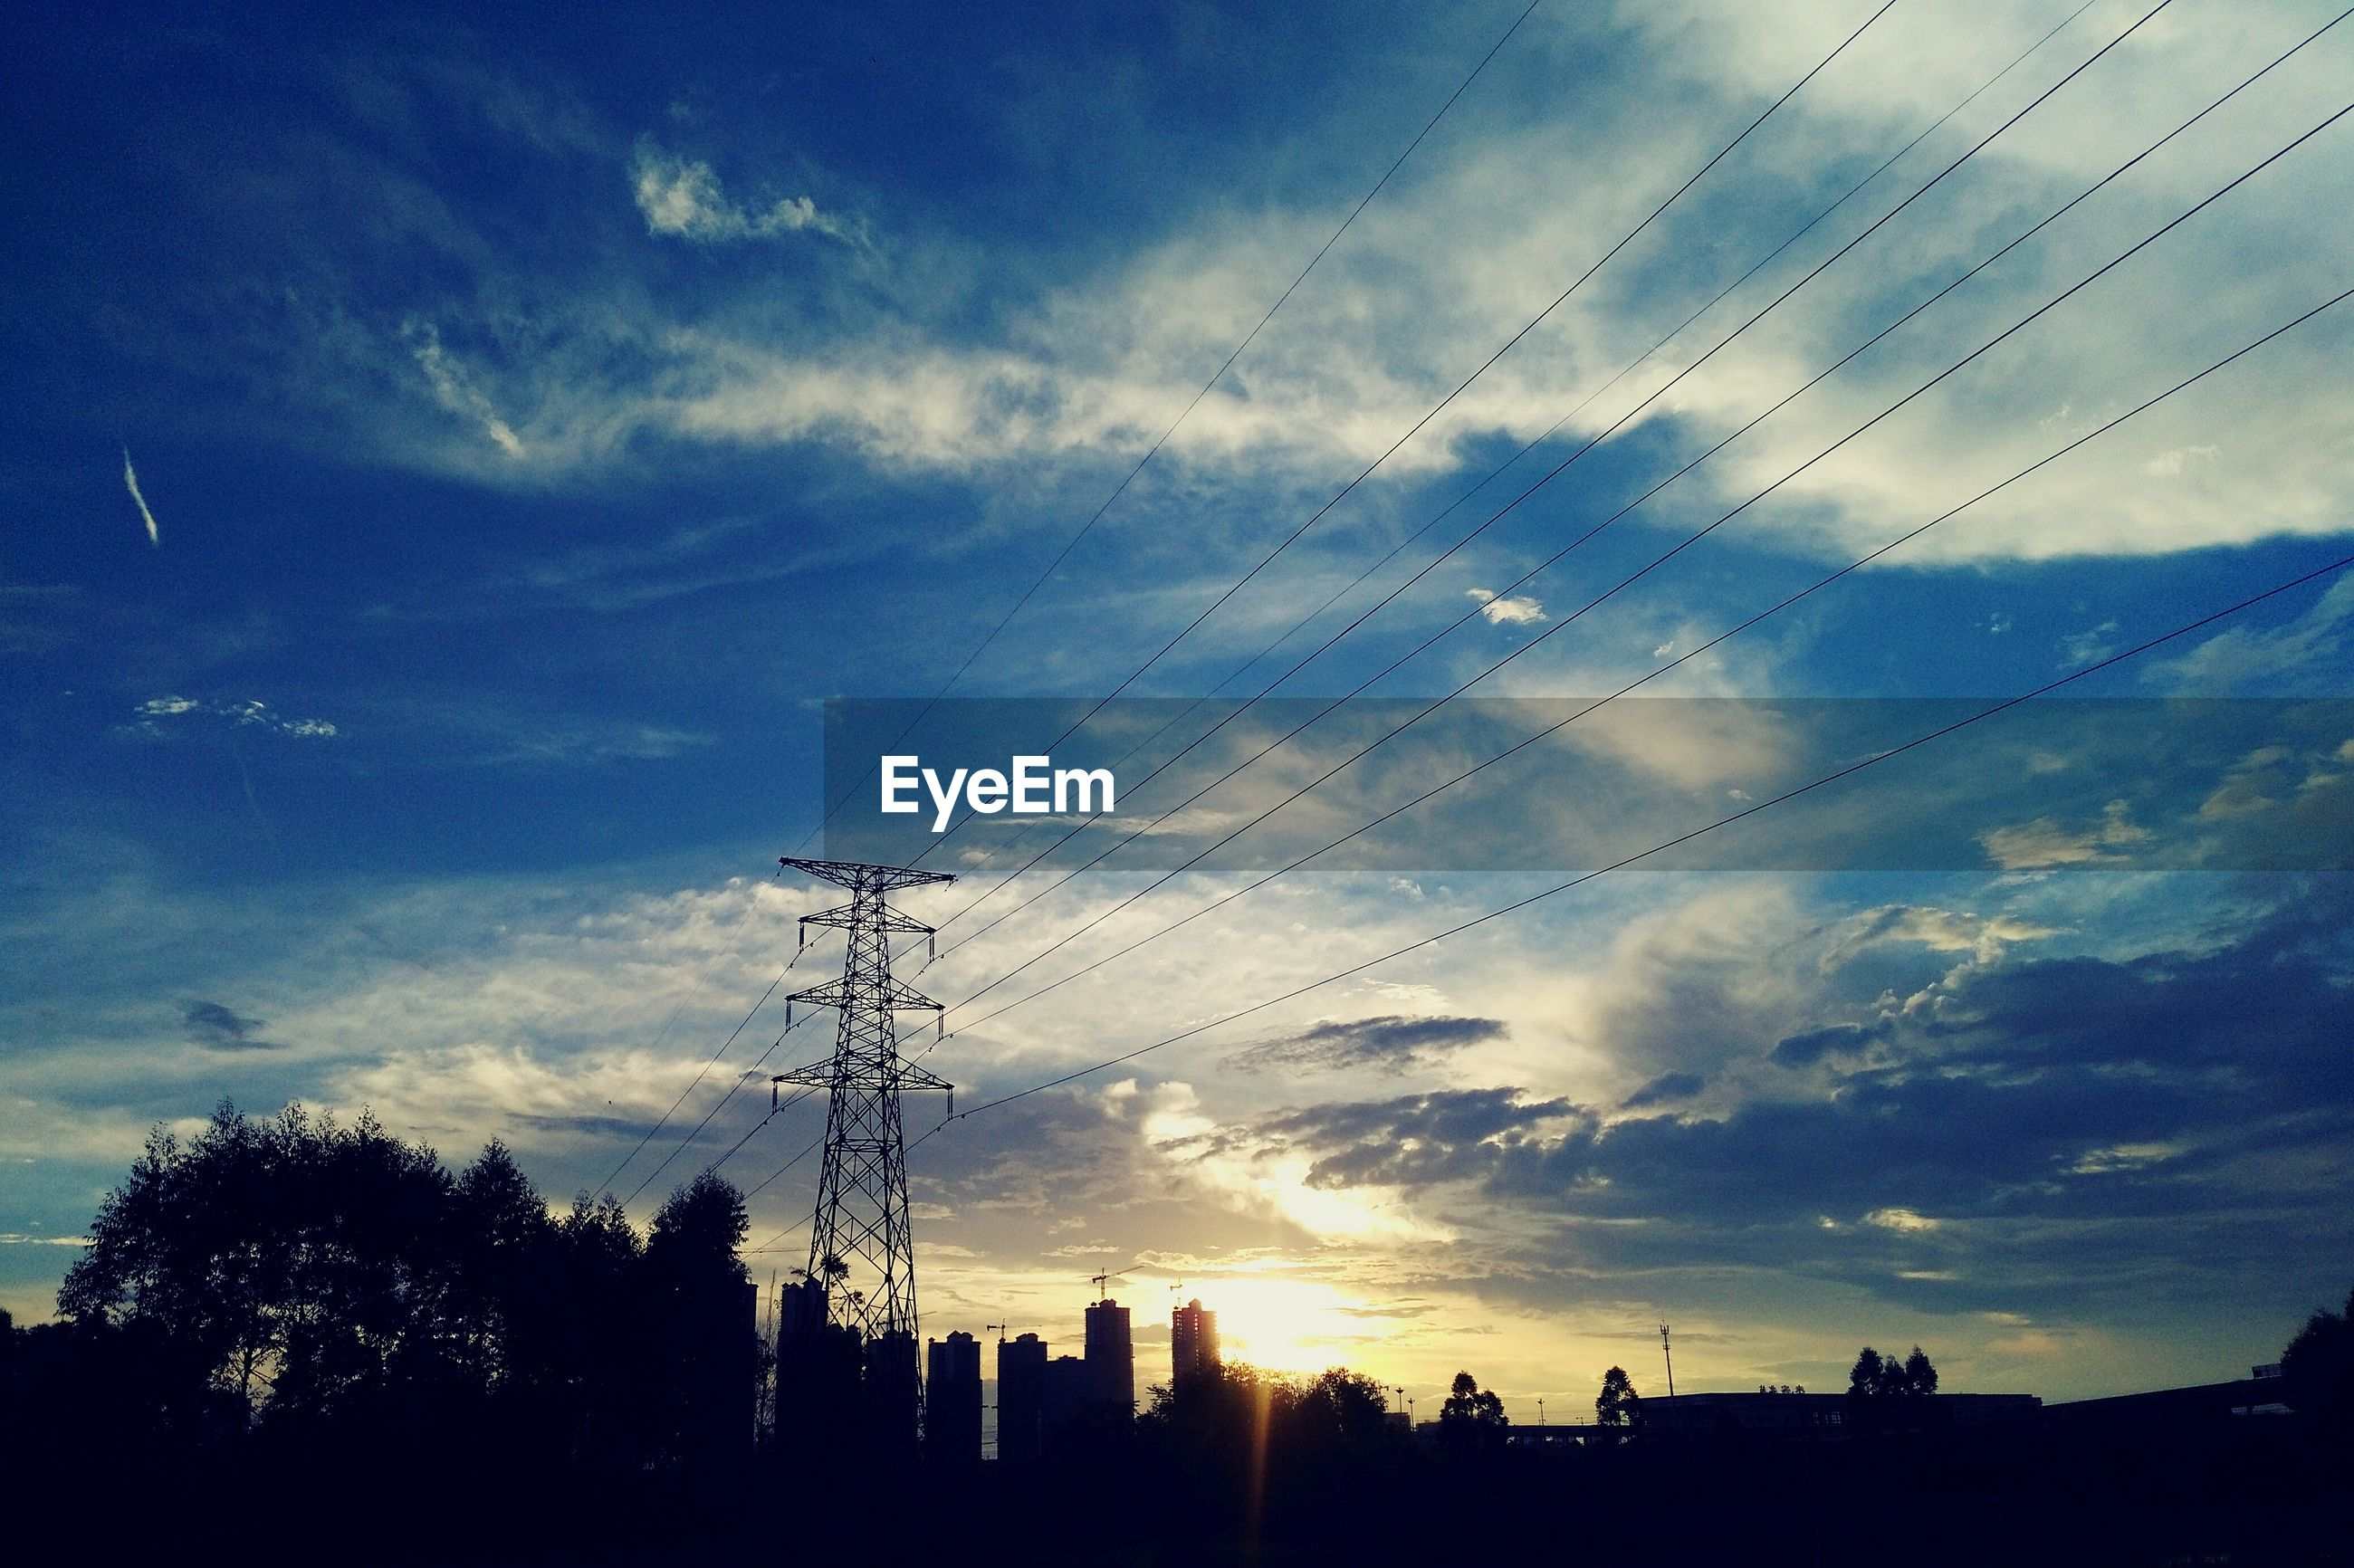 silhouette, sky, low angle view, cloud - sky, sunset, cloud, cloudy, power line, nature, beauty in nature, no people, outdoors, blue, outline, scenics, tranquility, tranquil scene